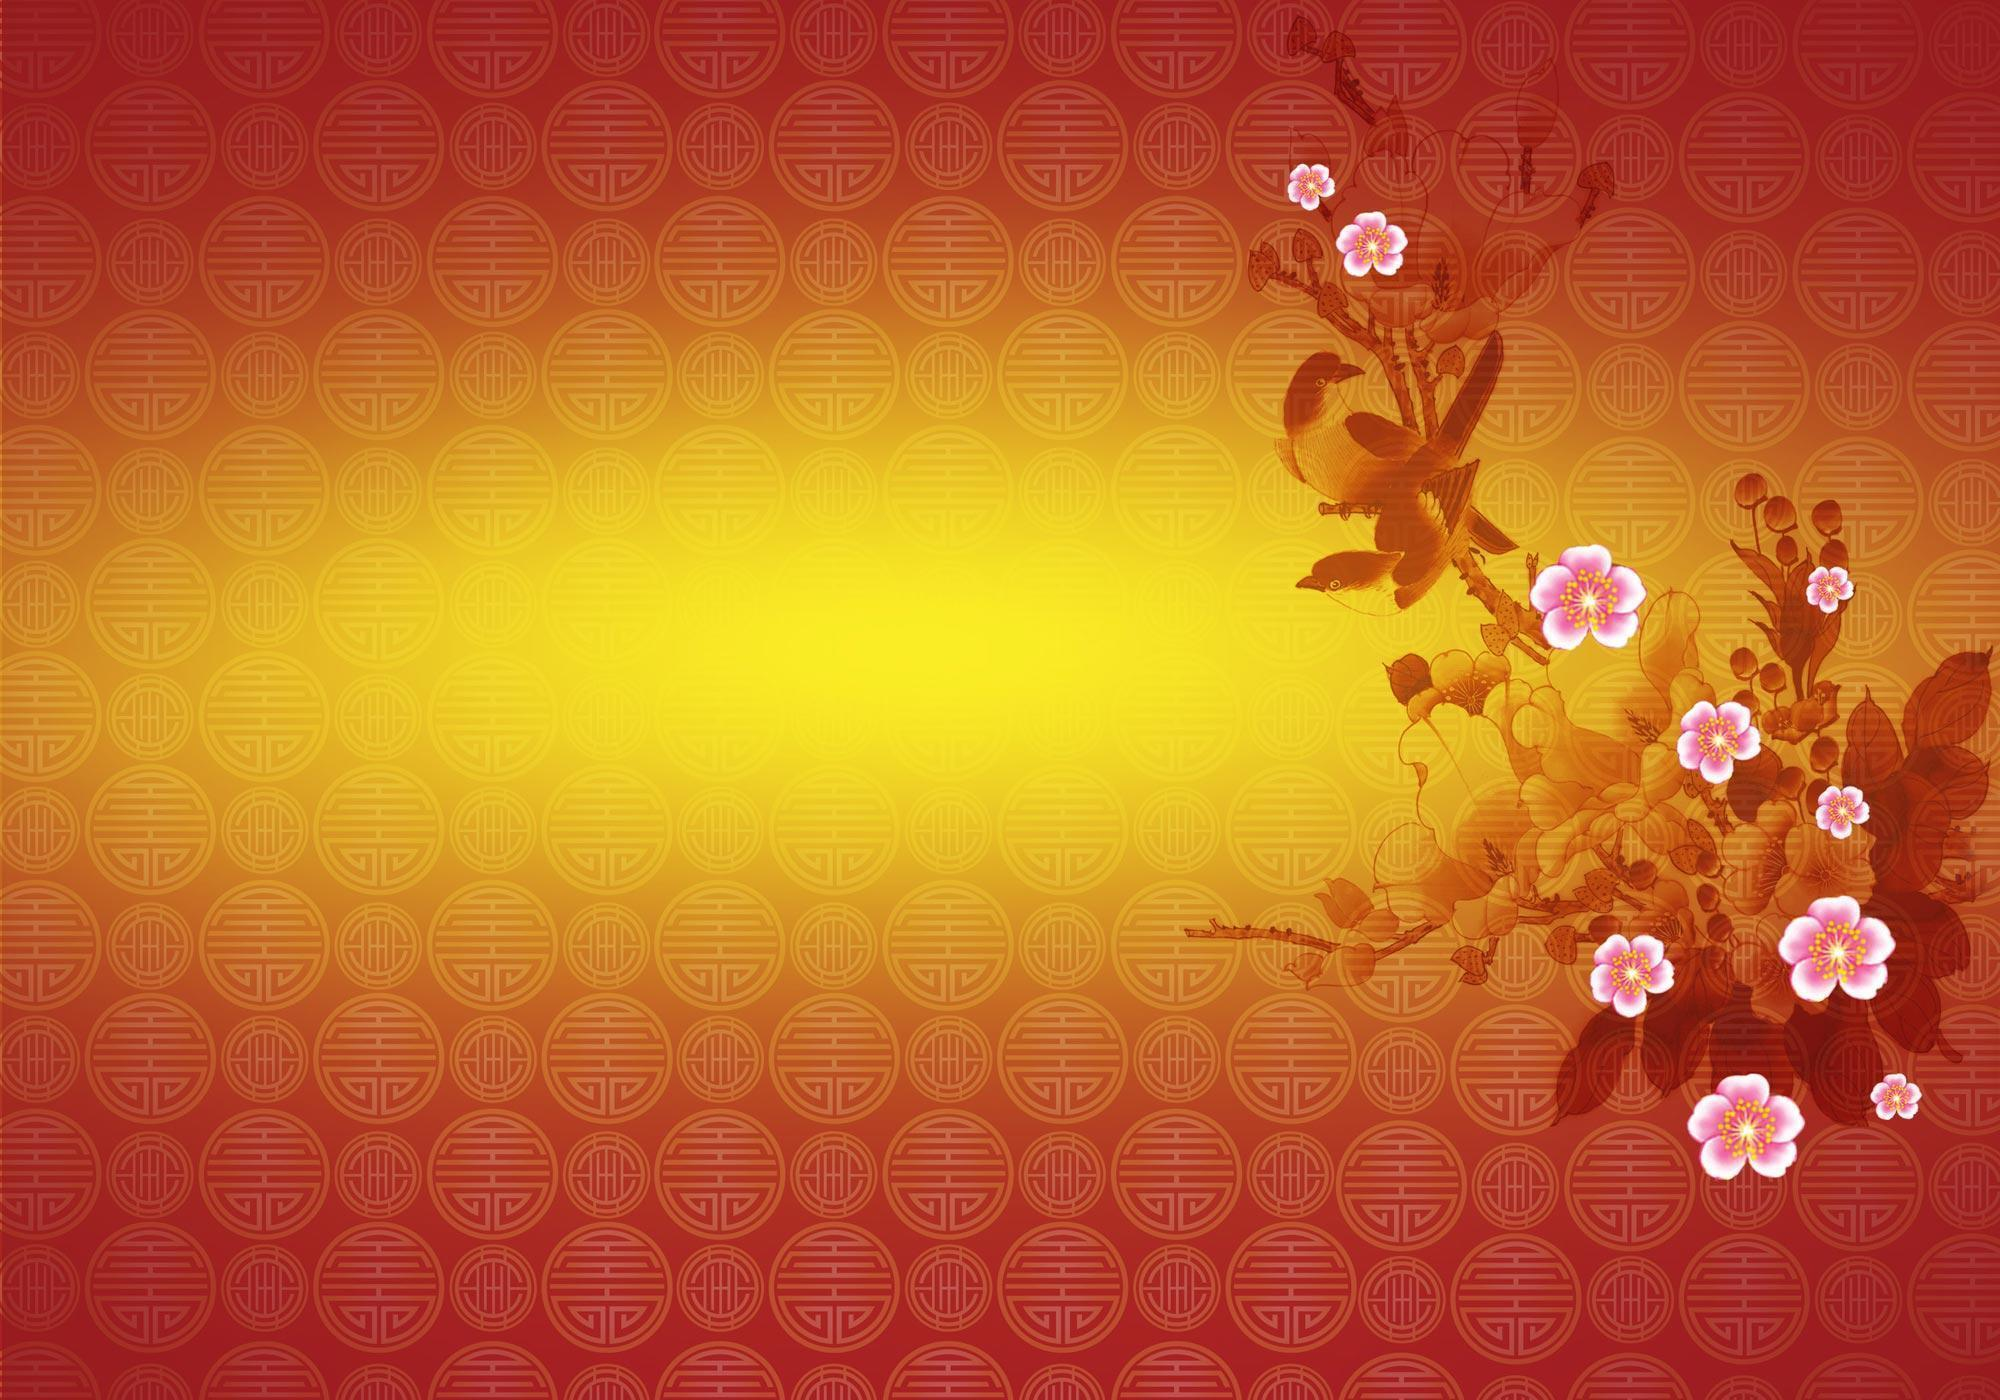 New Year Backgrounds Image 2000x1400